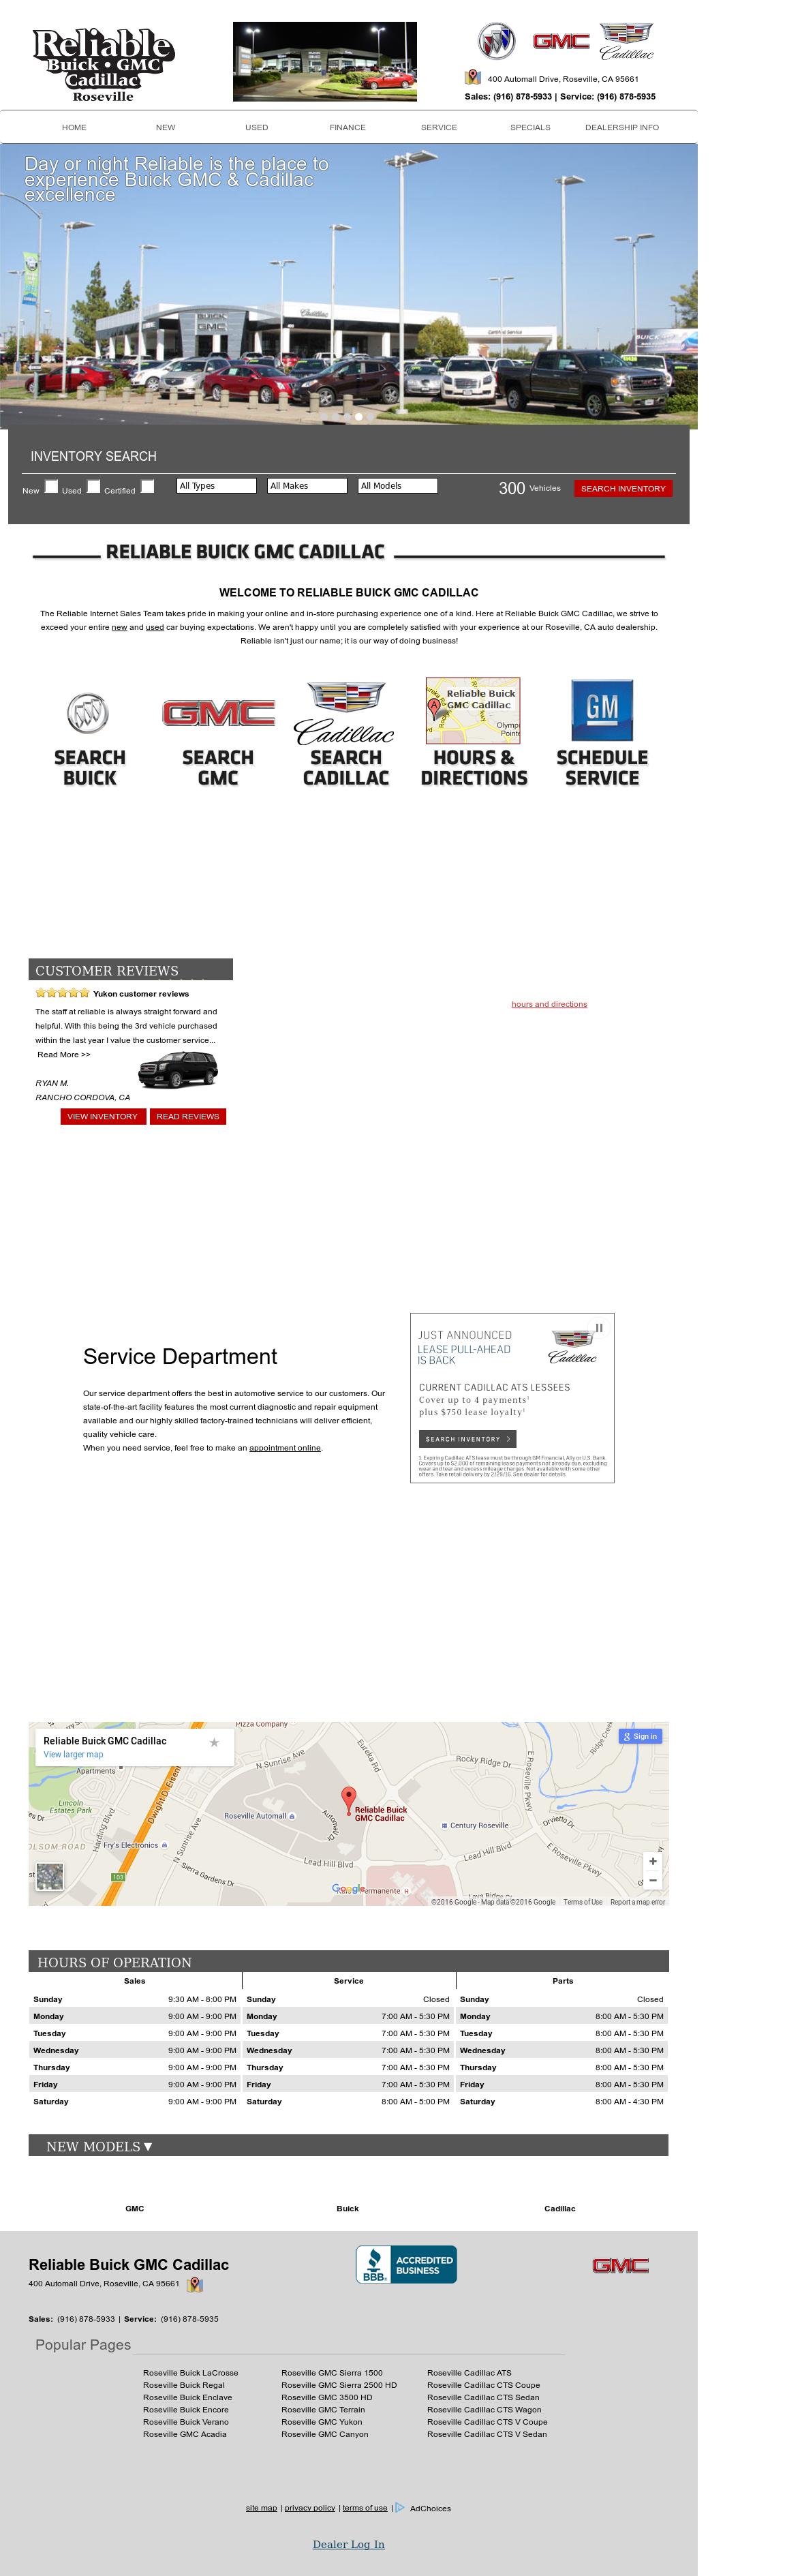 Reliable Buick Cadillac Gmc petitors Revenue and Employees